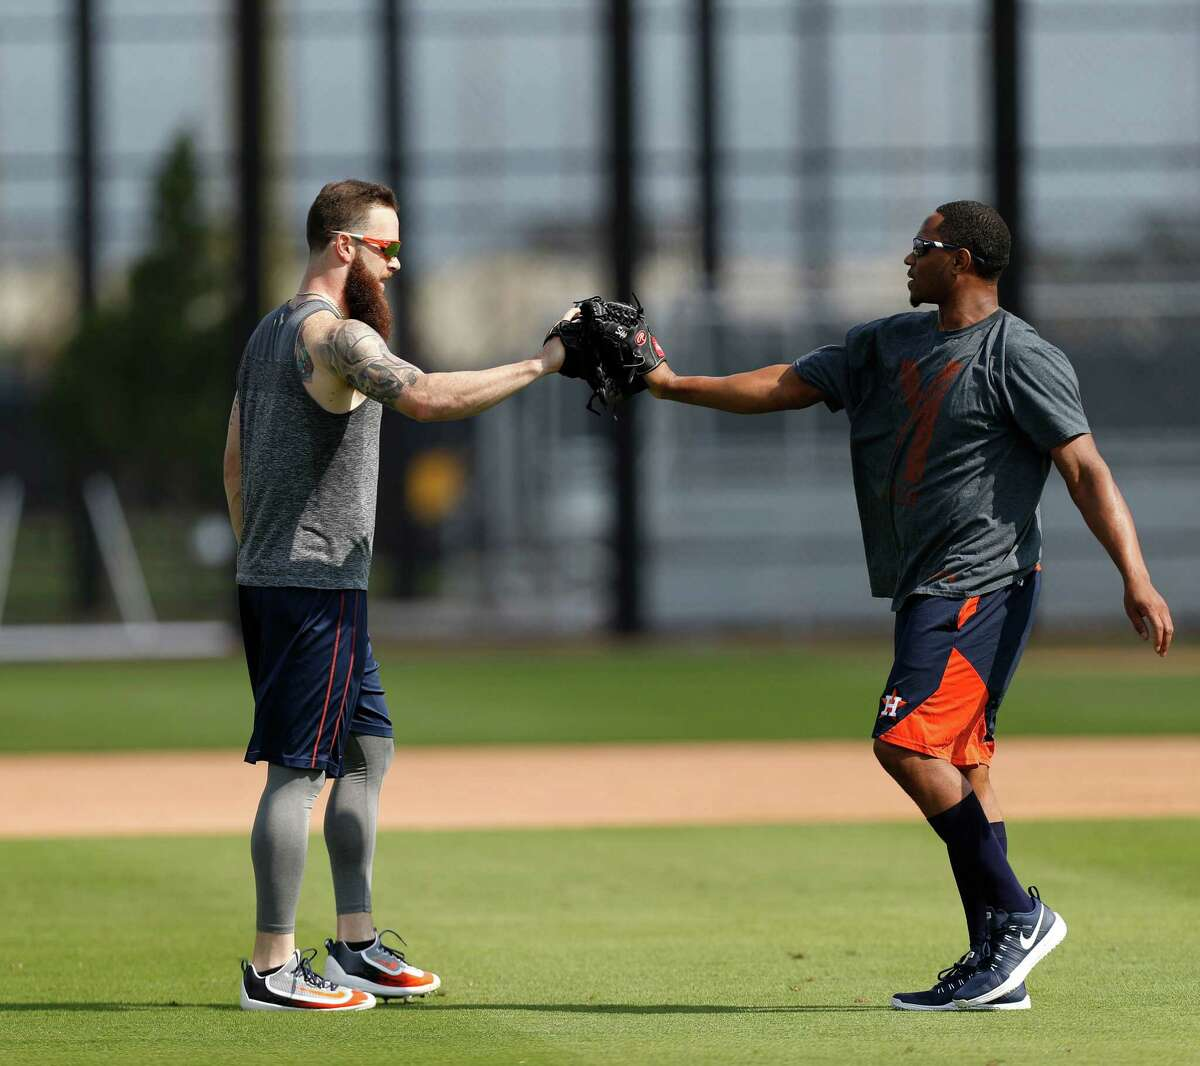 Houston Astros starting pitcher Dallas Keuchel glove bumps reliever Tony Sipp after they played catch during Astros pitchers and catchers report day at the Astros new spring training facility, The Ballpark of the Palm Beaches, in West Palm Beach, Florida, Tuesday, February 14, 2017. The Astros share the new ballpark with the Washington Nationals.